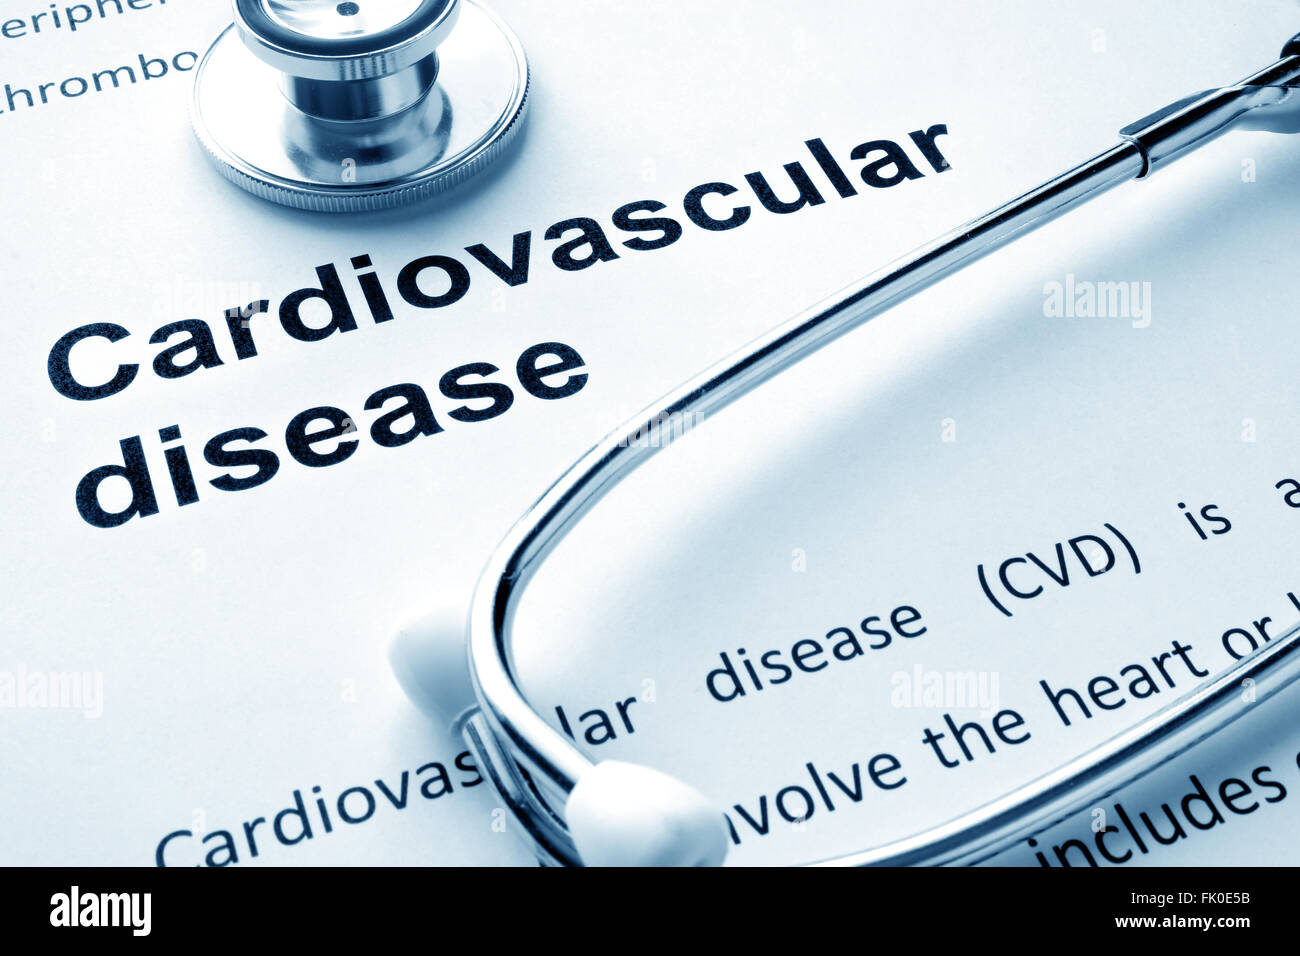 Paper with words Cardiovascular diseases and stethoscope. - Stock Image